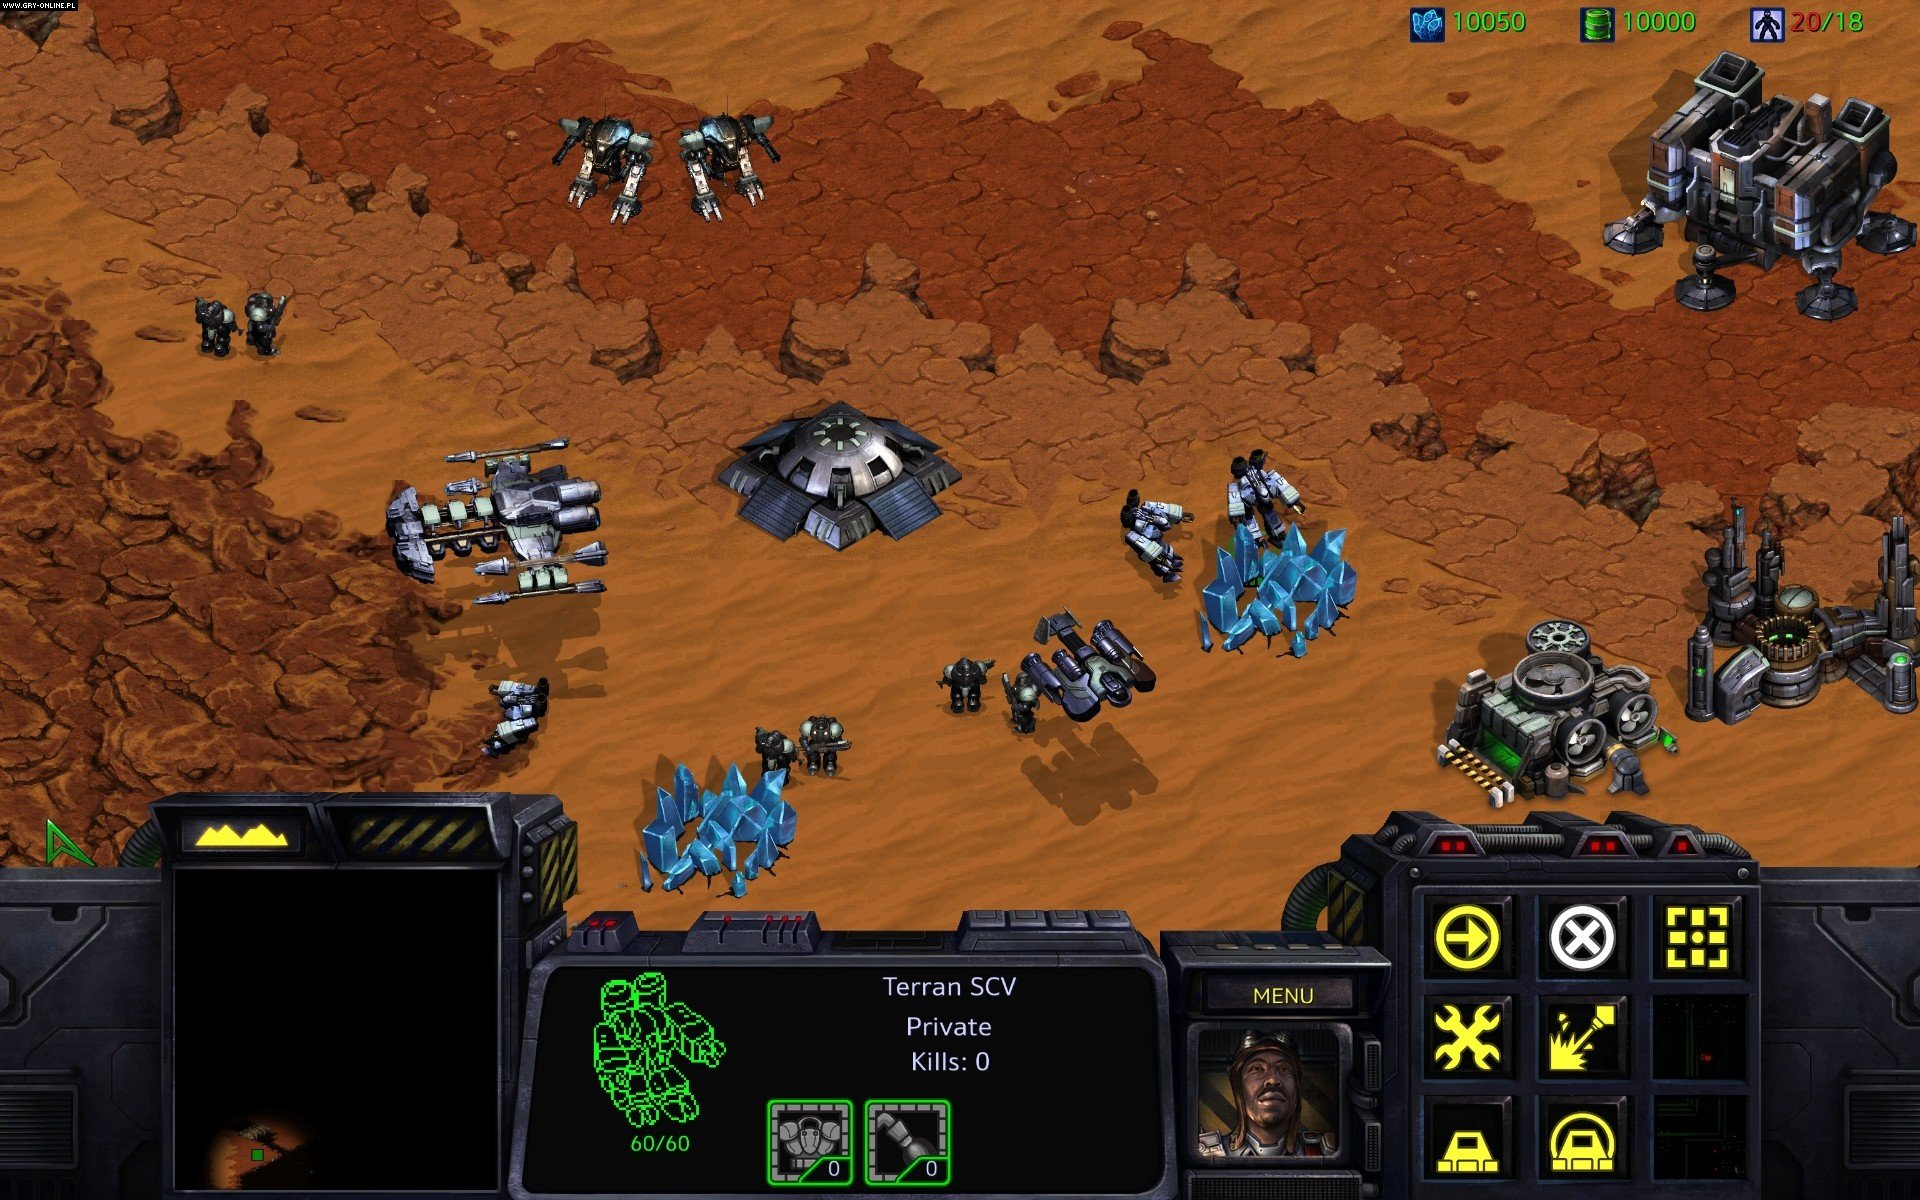 StarCraft: Remastered PC Gry Screen 12/15, Blizzard Entertainment